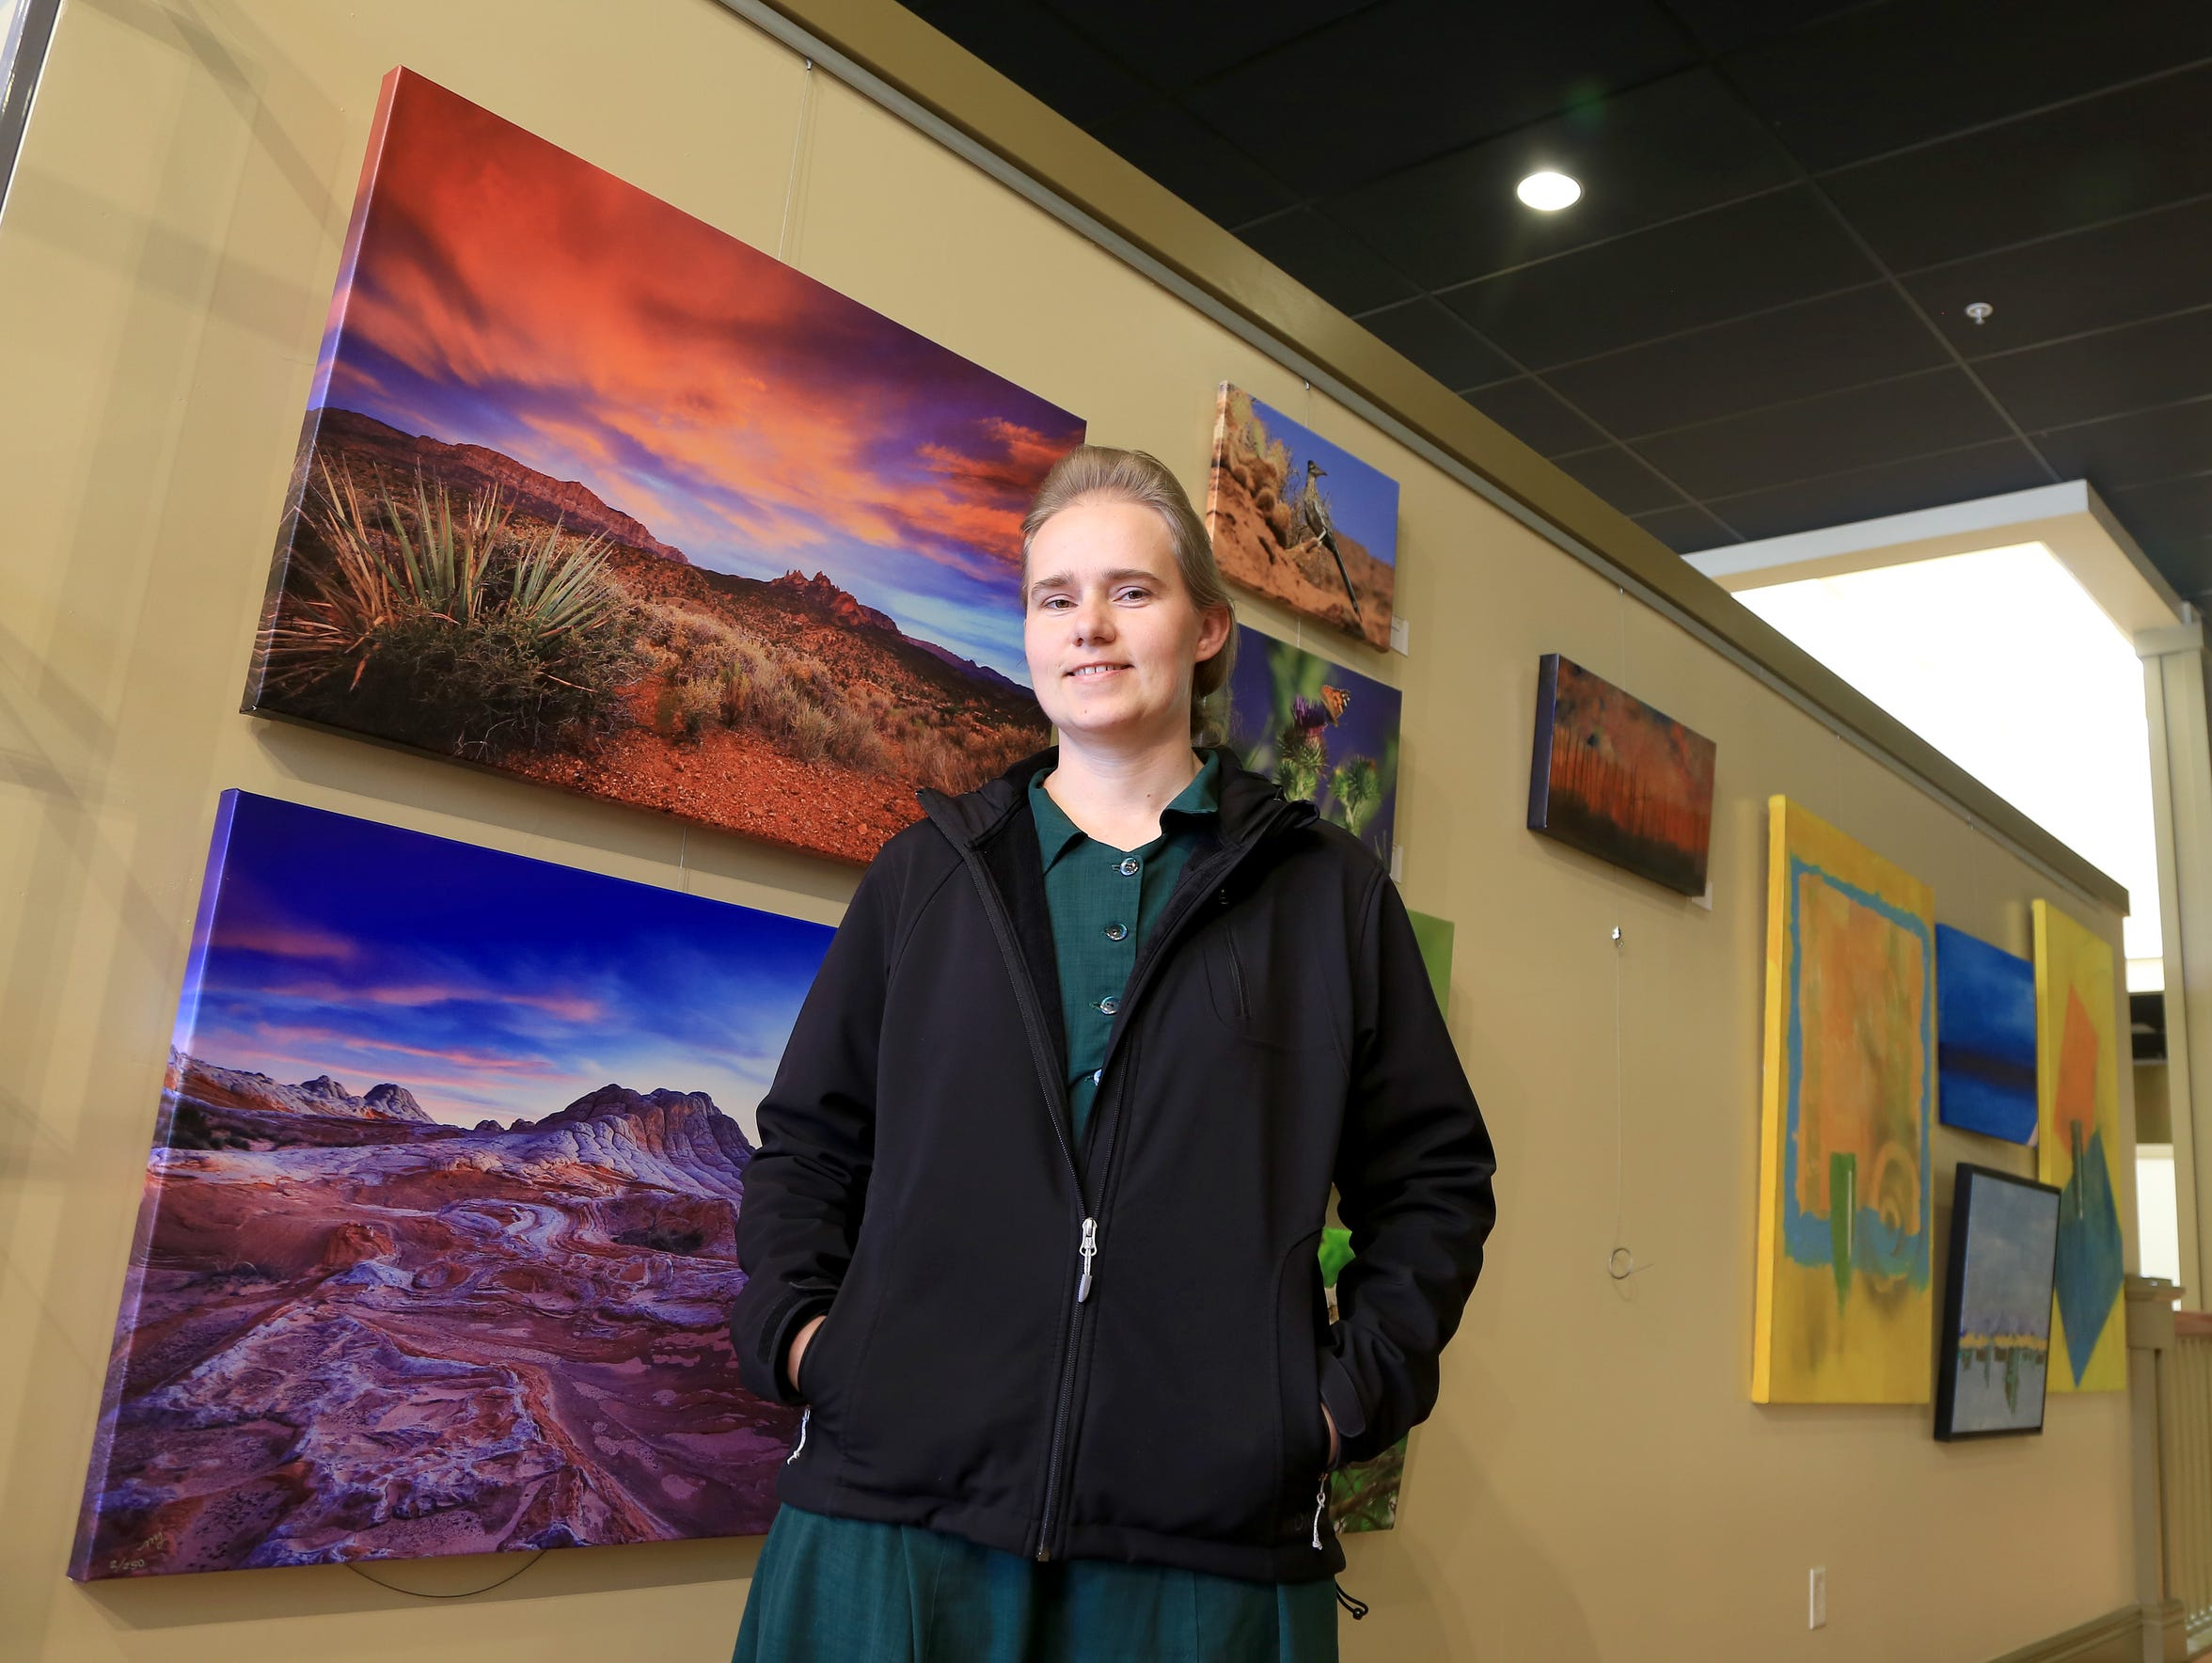 Maria Jeffs, a photographer from Hildale, stands in